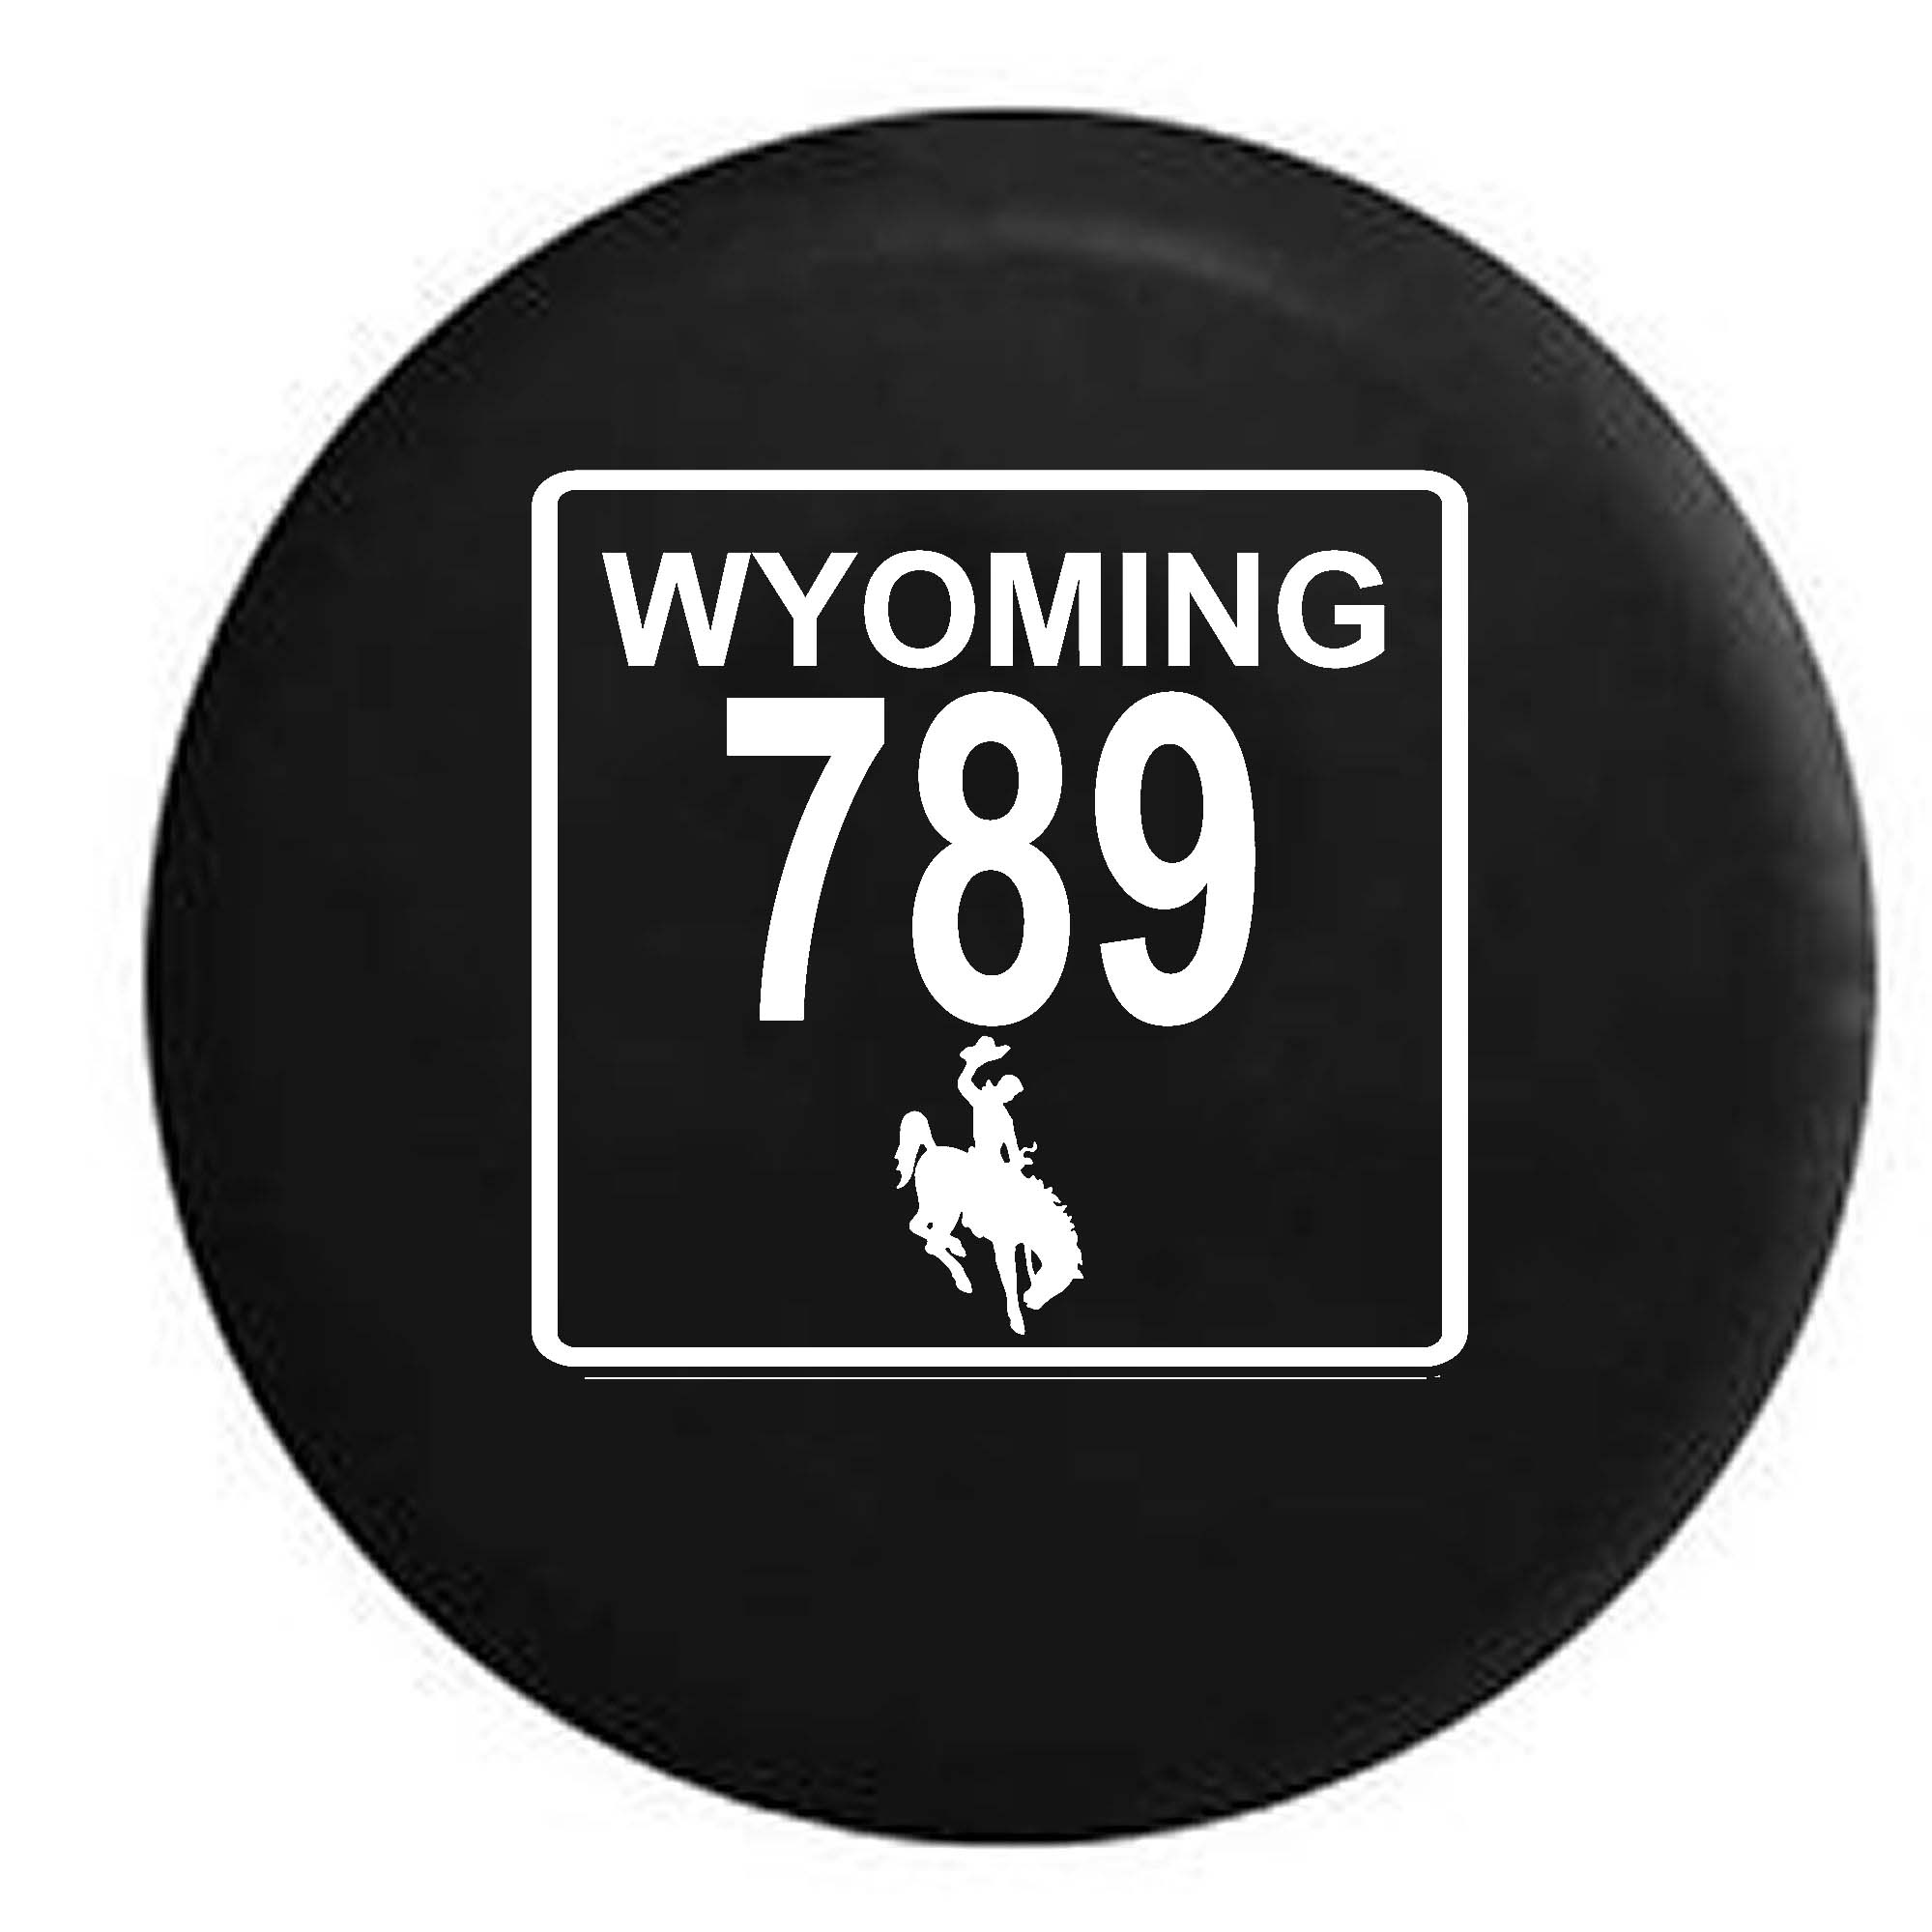 Wyoming State Route Highway 789 Cowboy Scenic Road Sign Spare Tire Cover Vinyl Black 29 in